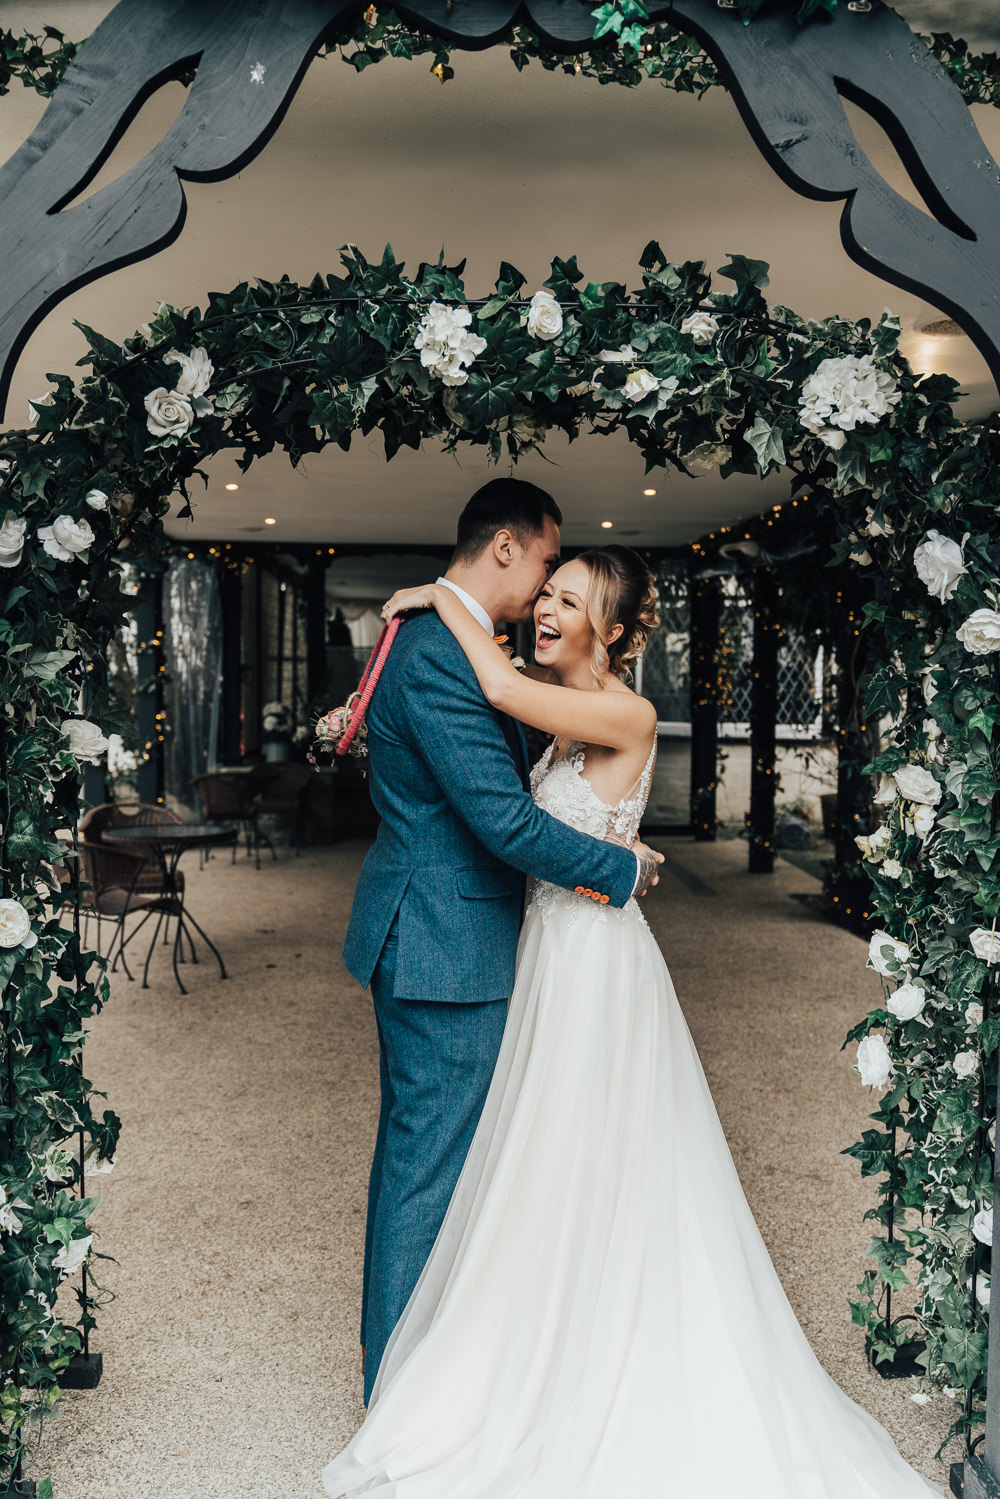 Greenery Foliage Arch Flower Backdrop Hoop Wedding Ideas Rebecca Carpenter Photography